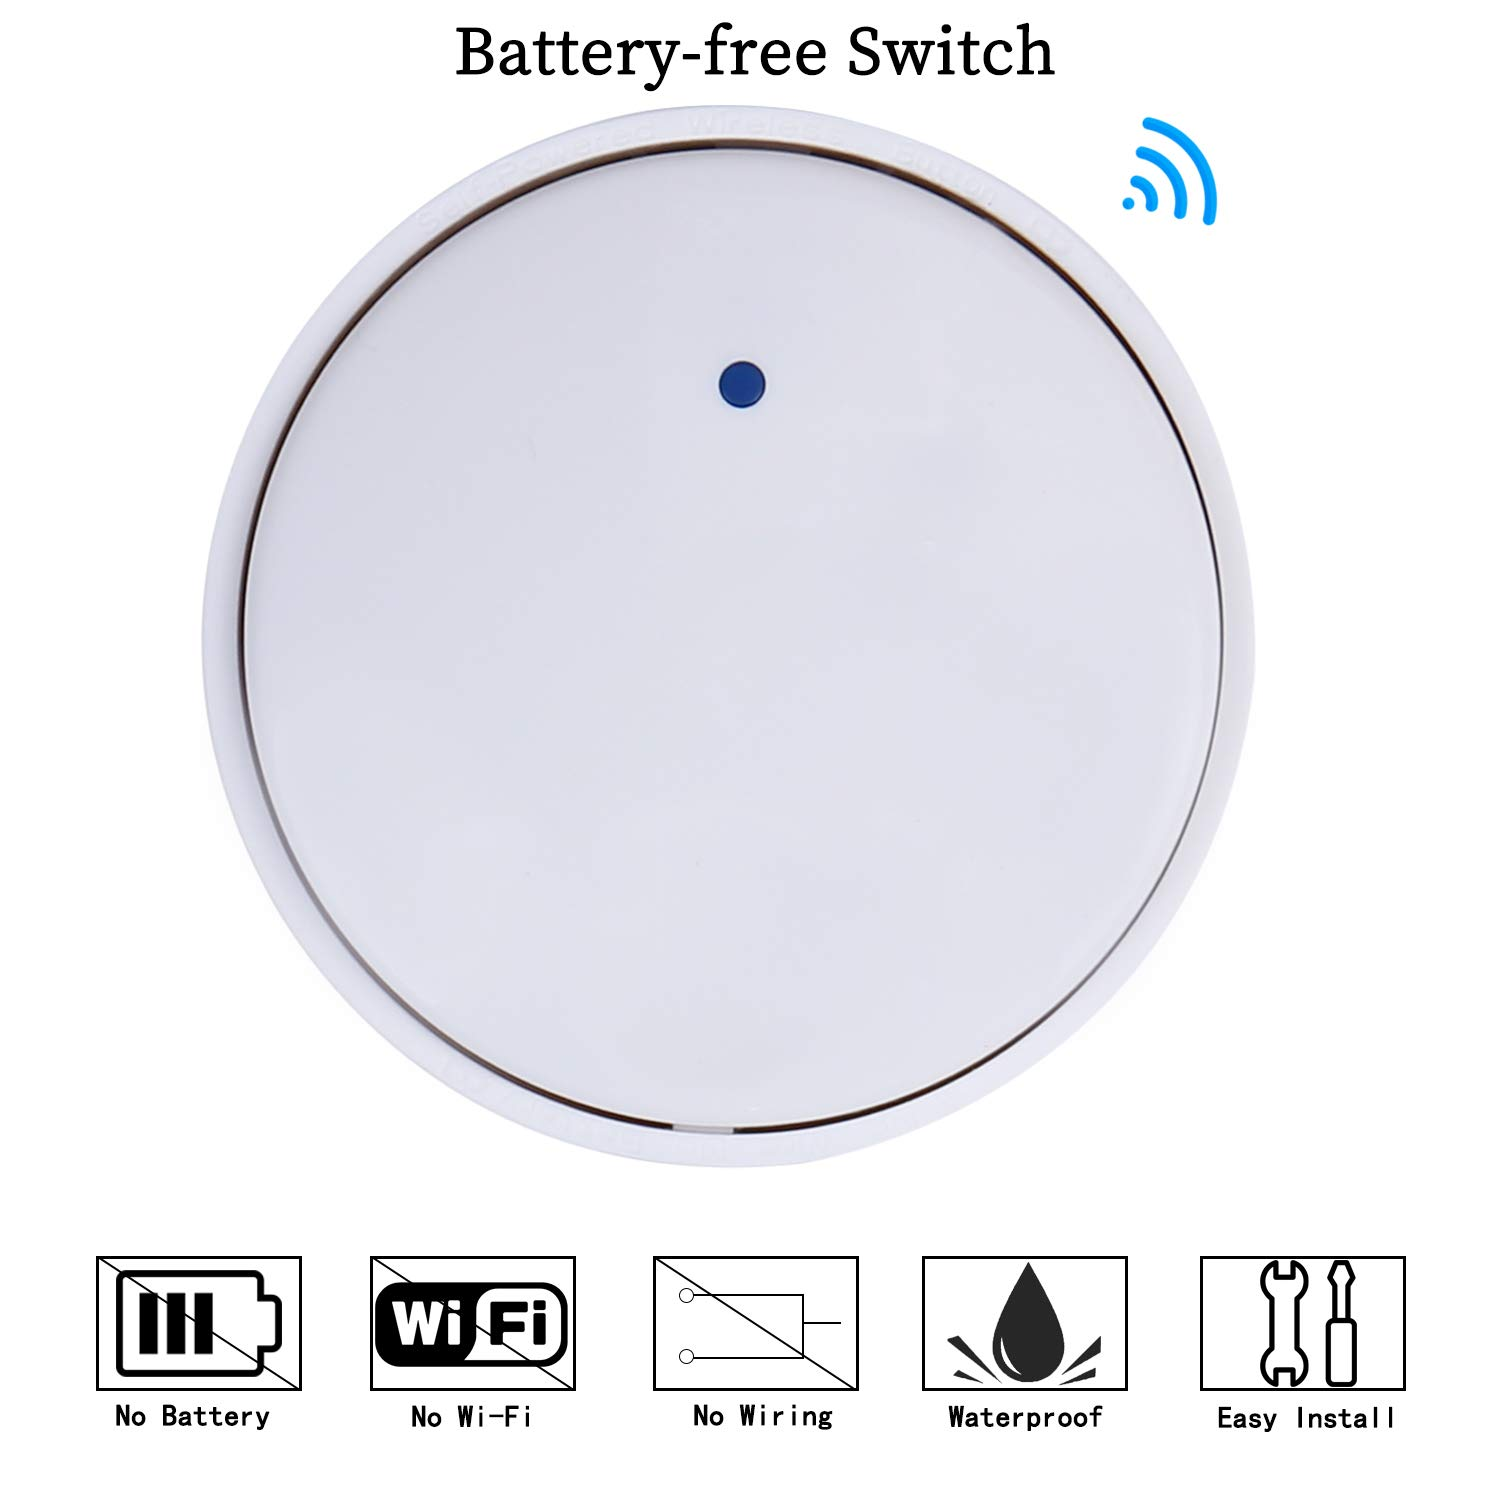 Sink Top Garbage Disposal Wireless Switch Kit No Batteries Required Battery Wiring Diagram Self Powered For Waste Disposer